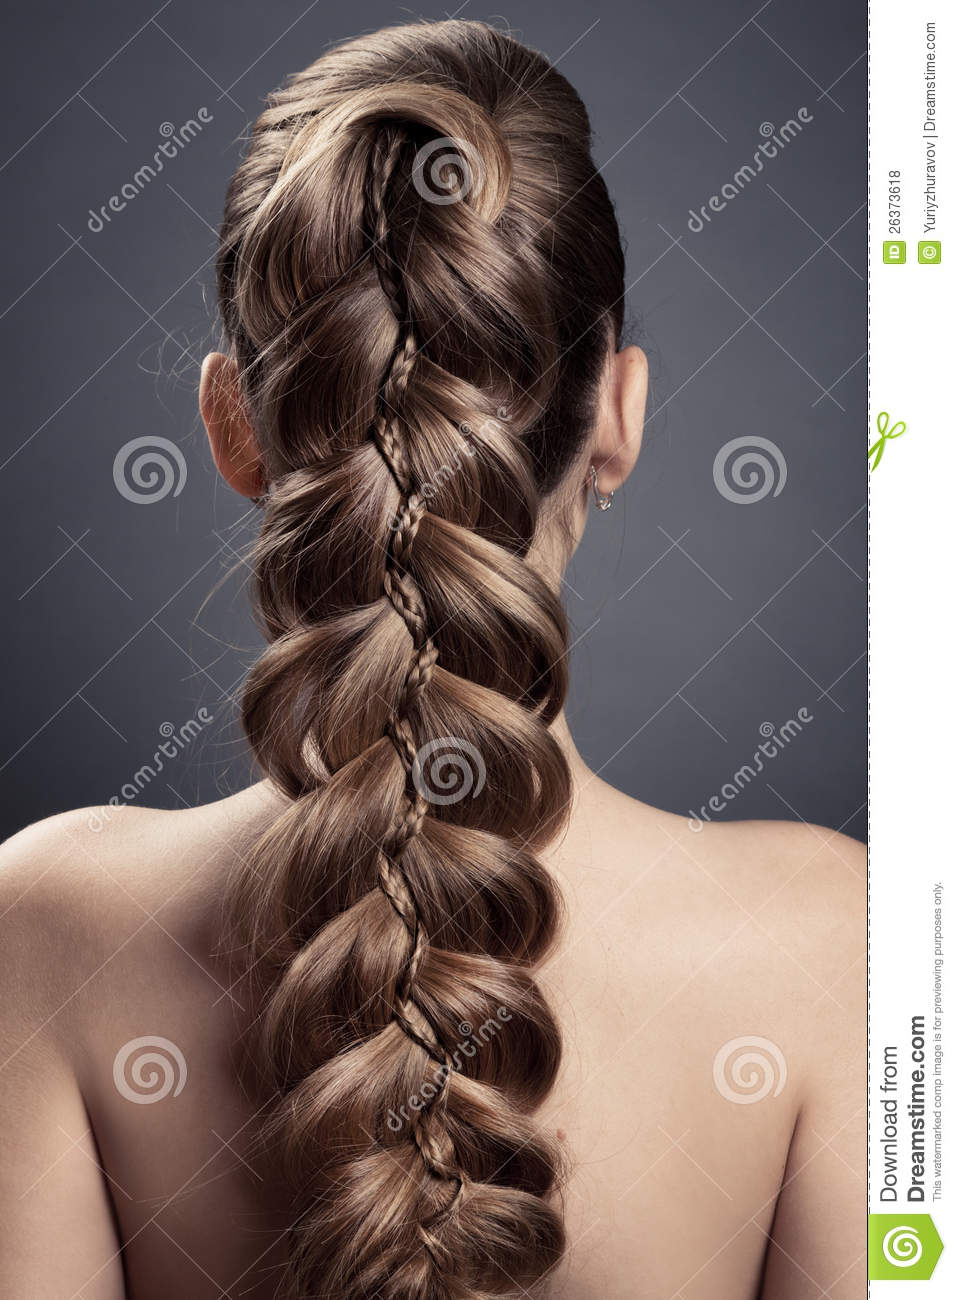 Girls with hairy backs